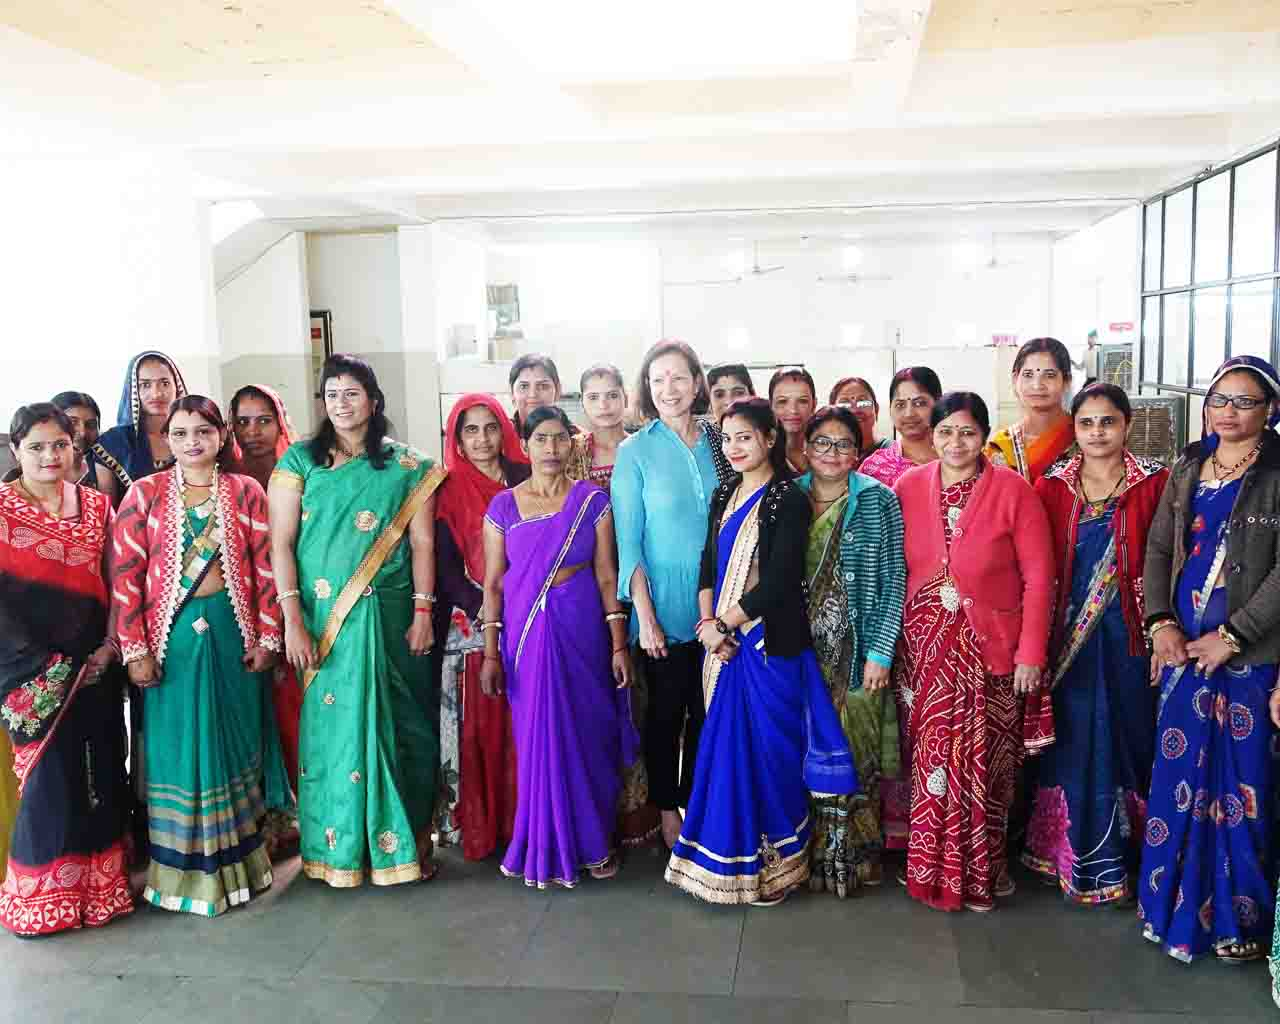 Artisan jewelry makers in India supported by Trades of Hope